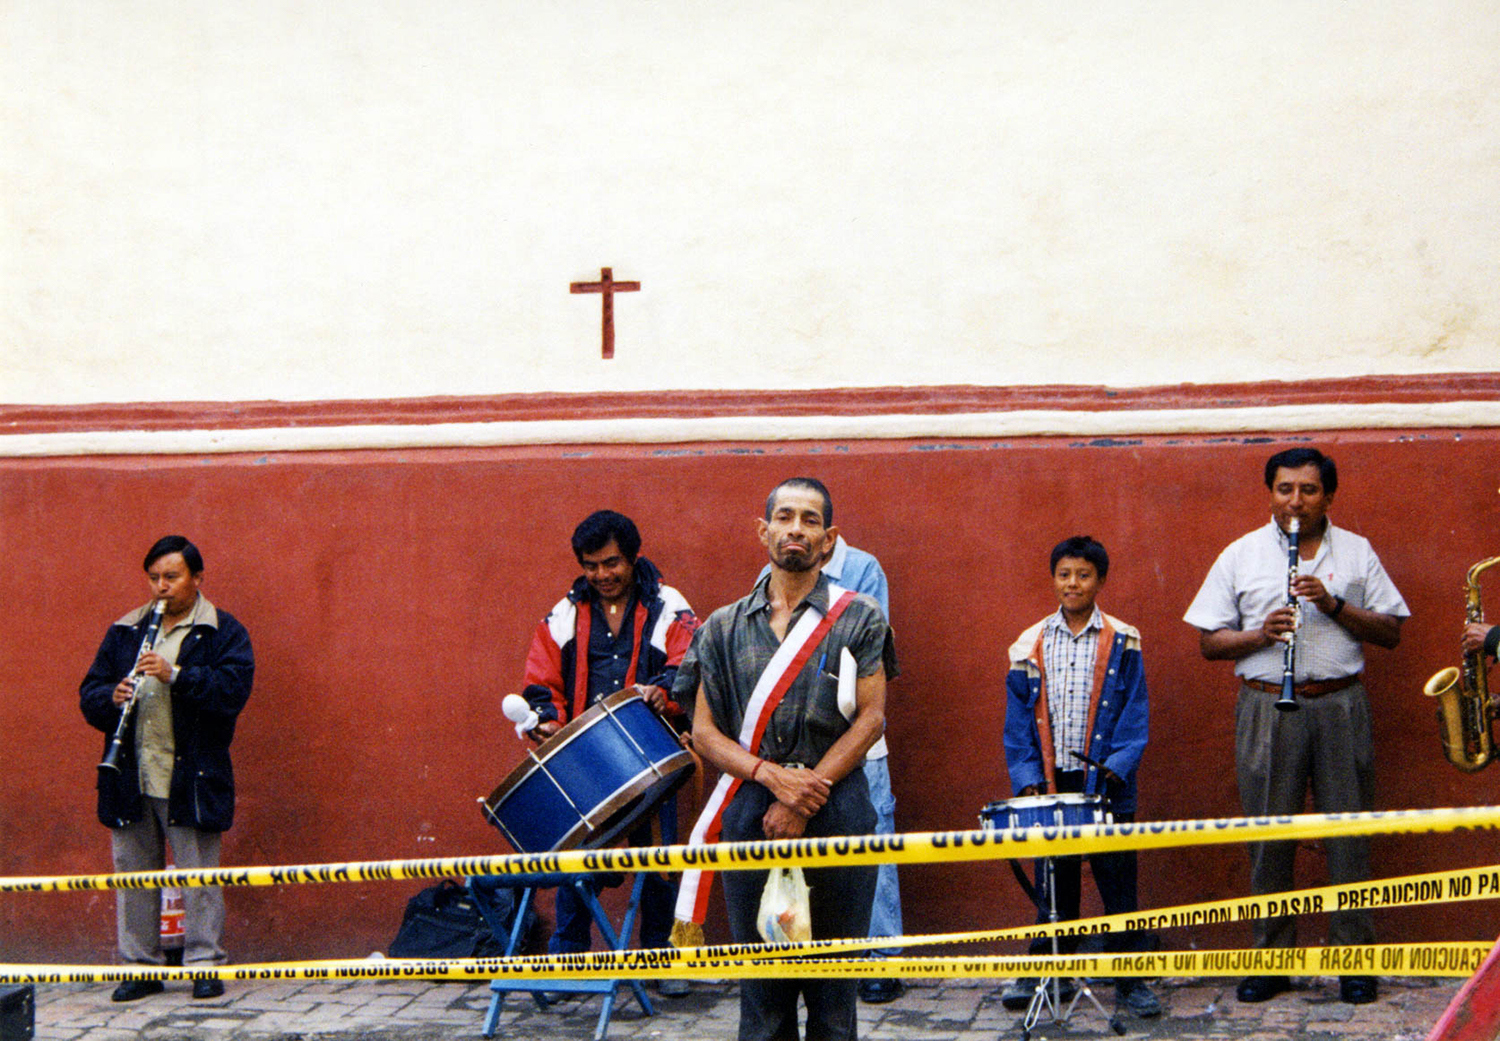 <p>A band of musicians performs in a churchyard in Puebla, Mexico.</p>